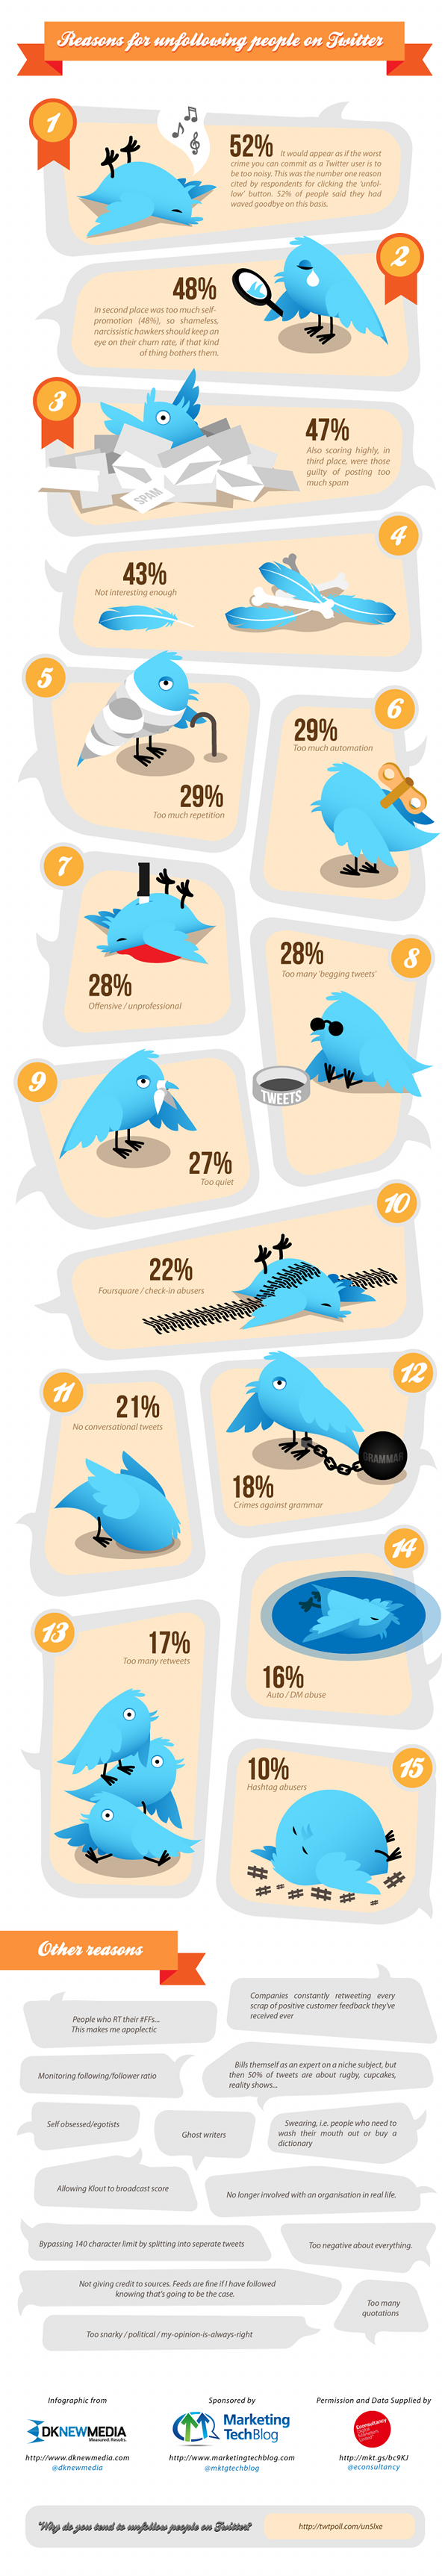 Reasons for Unfollowing People on Twitter - infographic